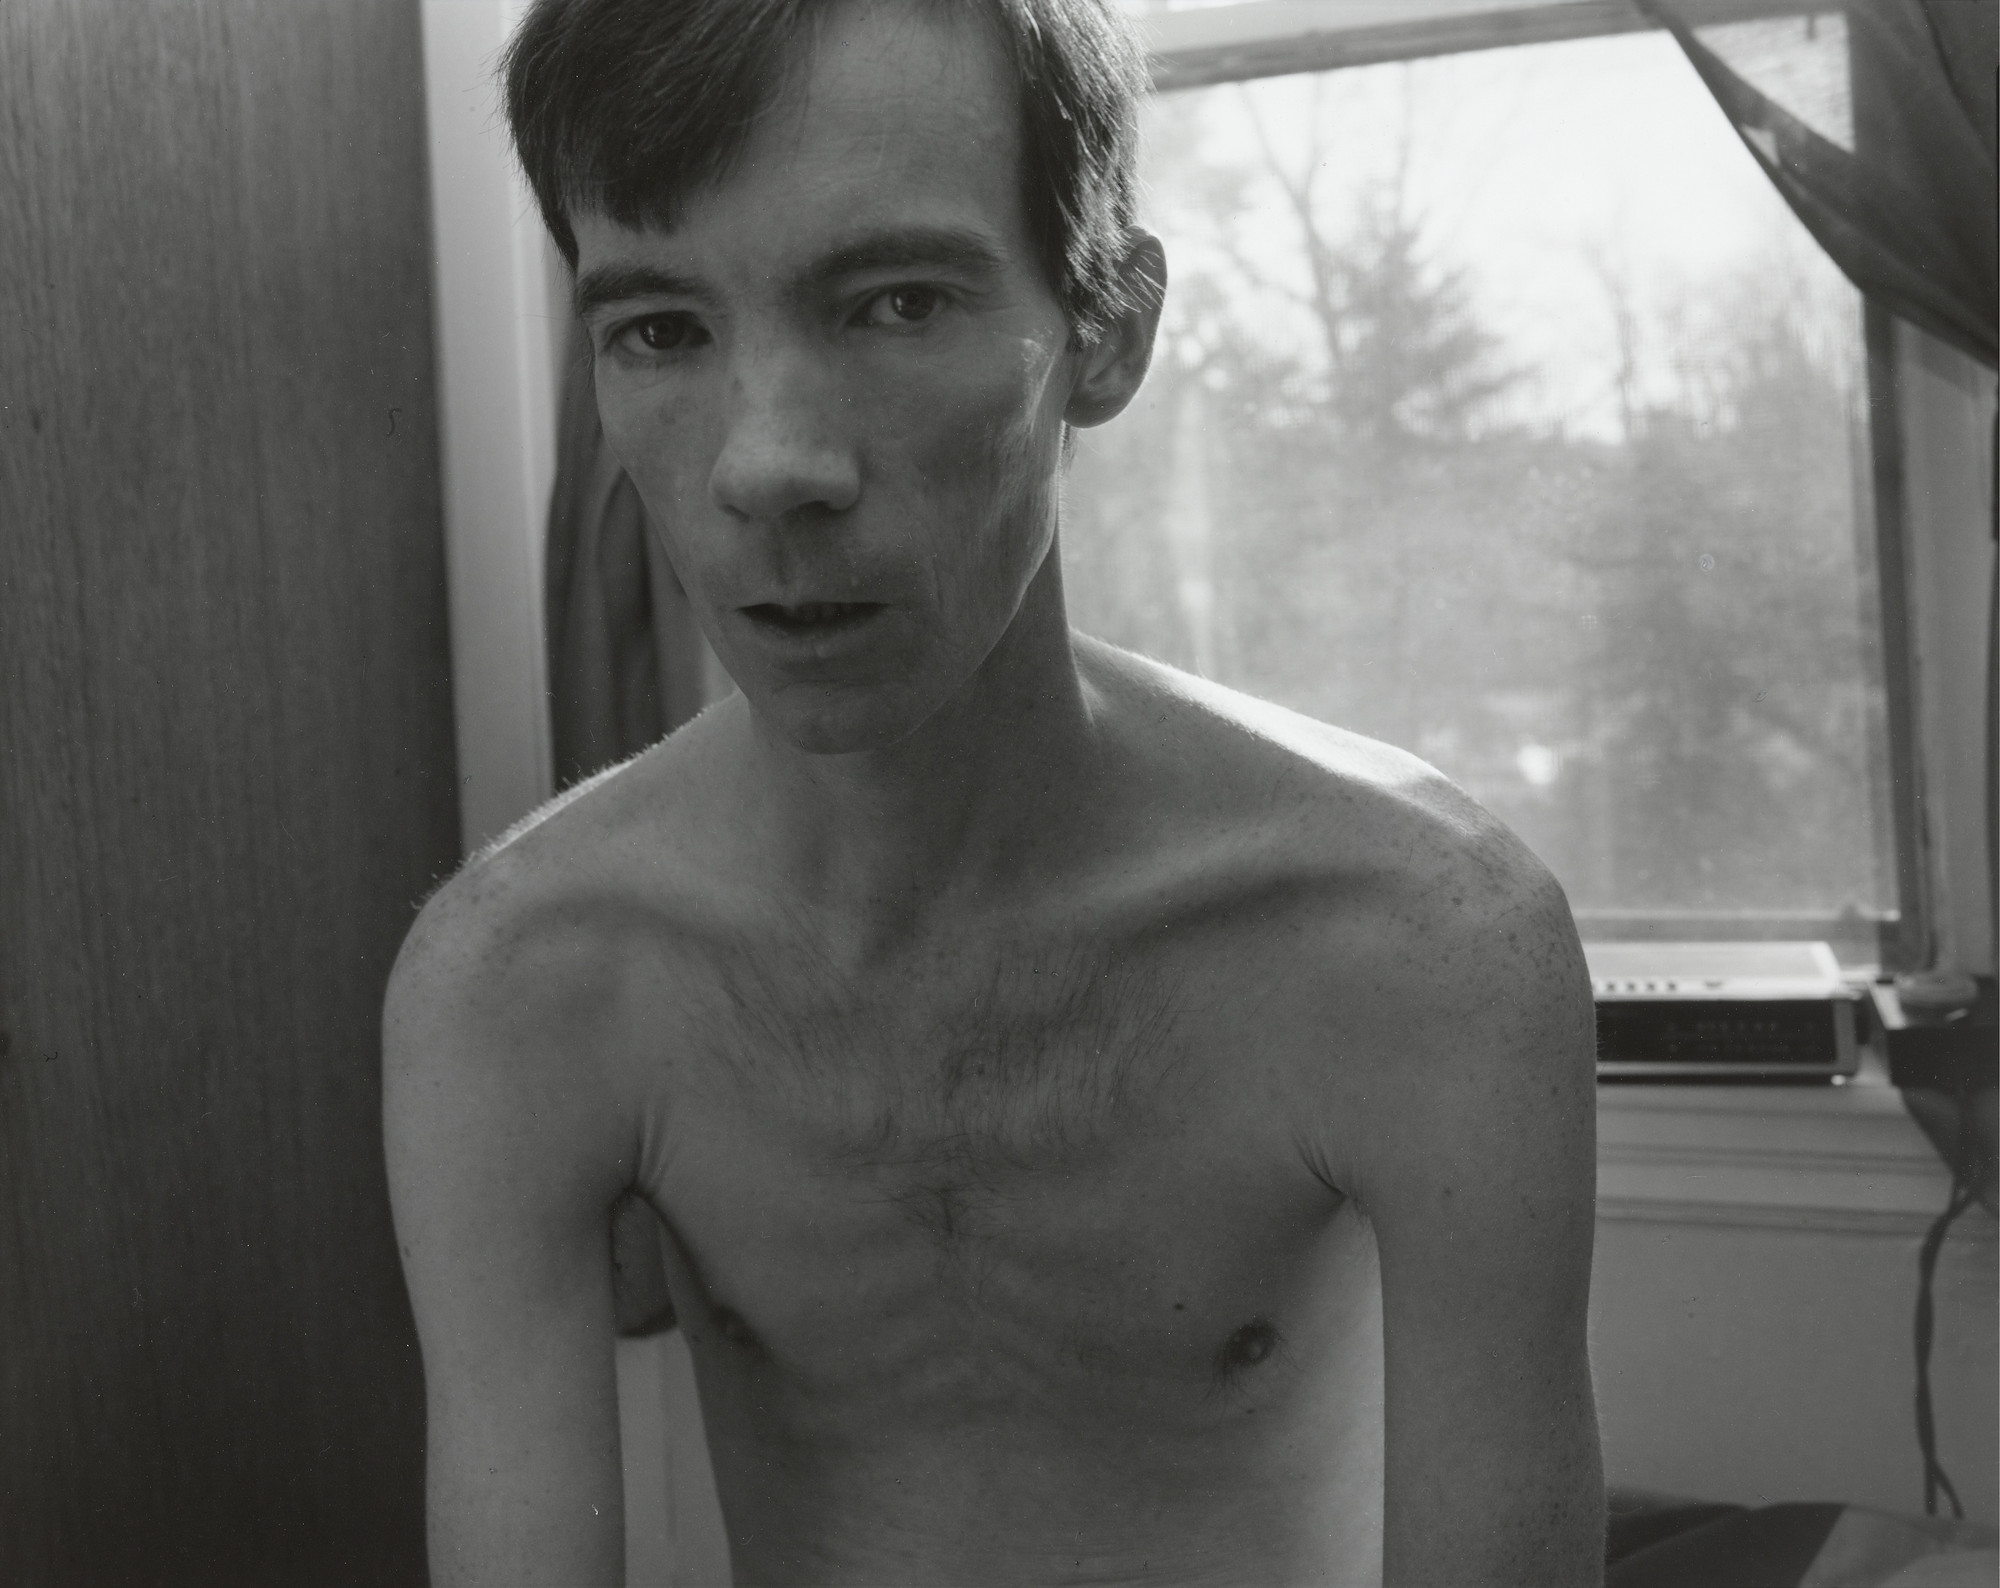 Nicholas Nixon. Tom Moran, East Braintree, Massachusetts. November 1987